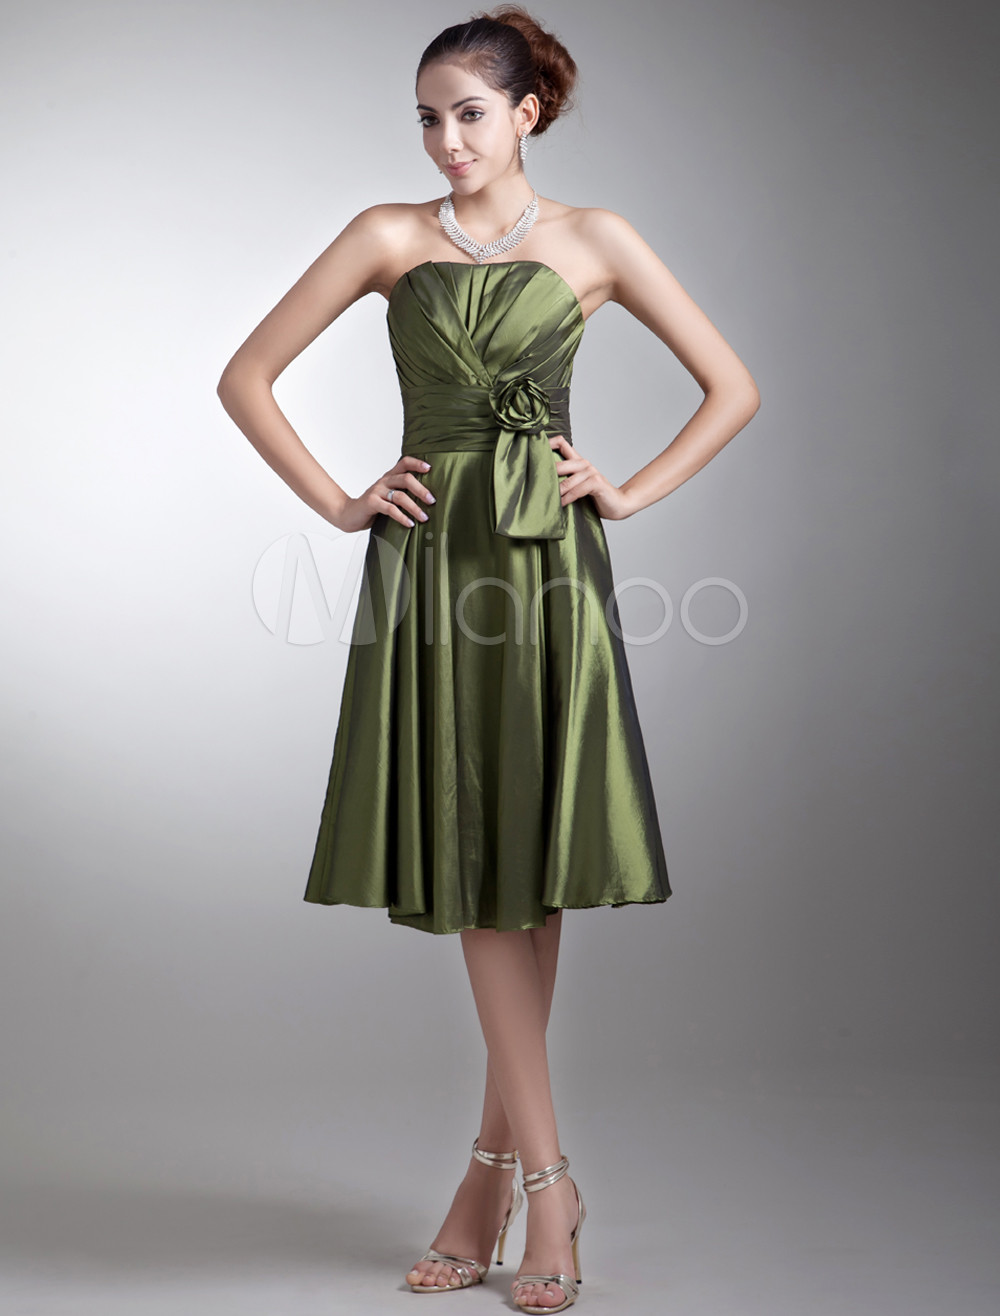 A-line Dark Green Taffeta Floral Sweetheart Neck Bridesmaid Dress For Wedding